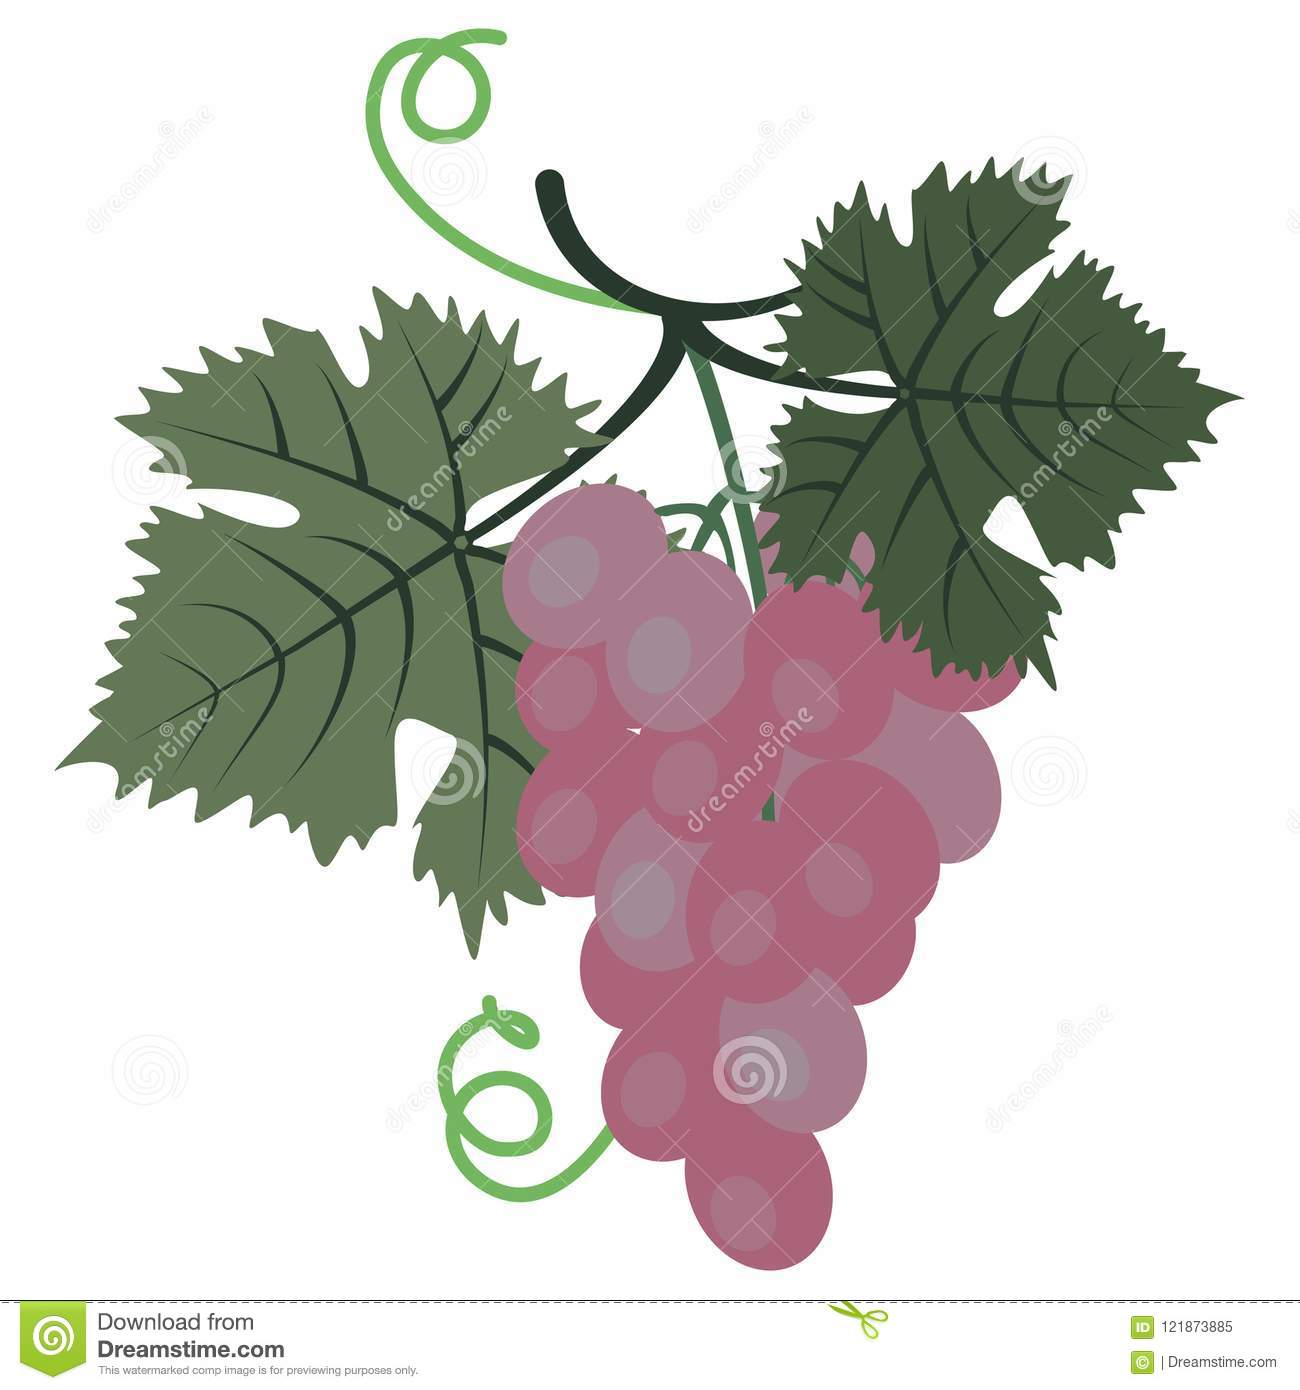 hight resolution of clipart grape stock illustrations 837 clipart grape stock illustrations vectors clipart dreamstime